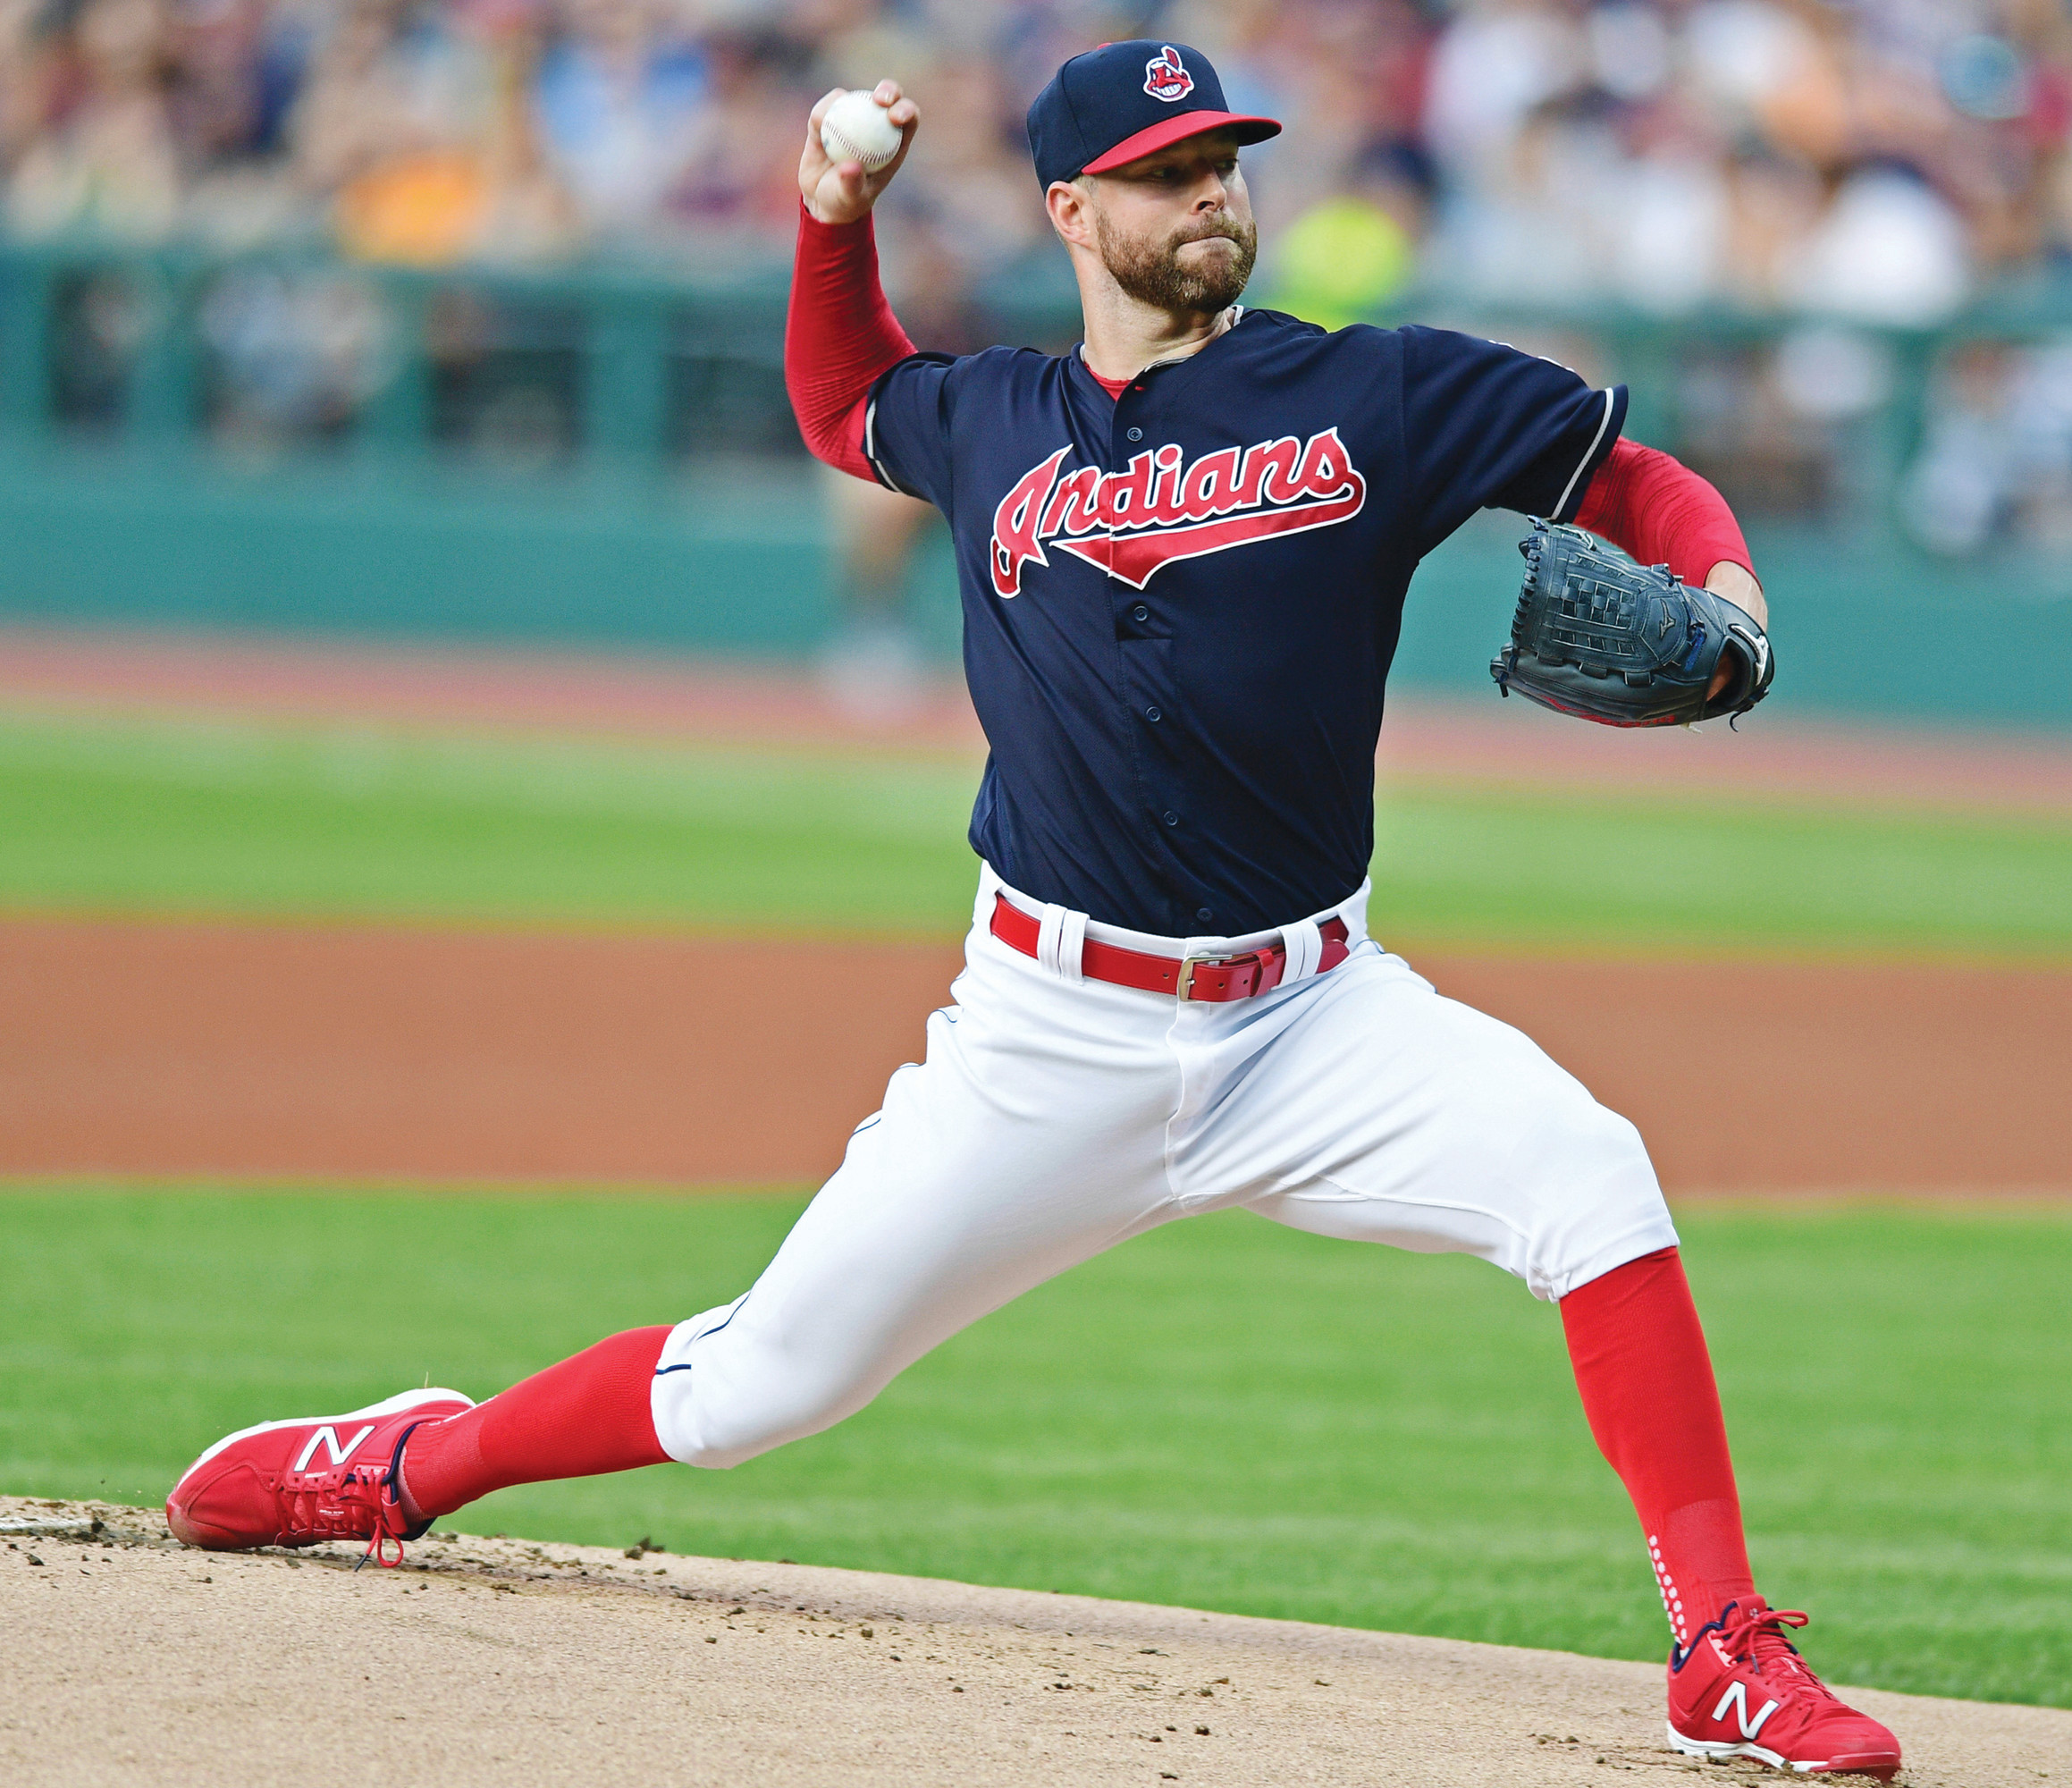 Cleveland pitching ace Corey Kluber won his second American League Cy Young Award on Wednesday.